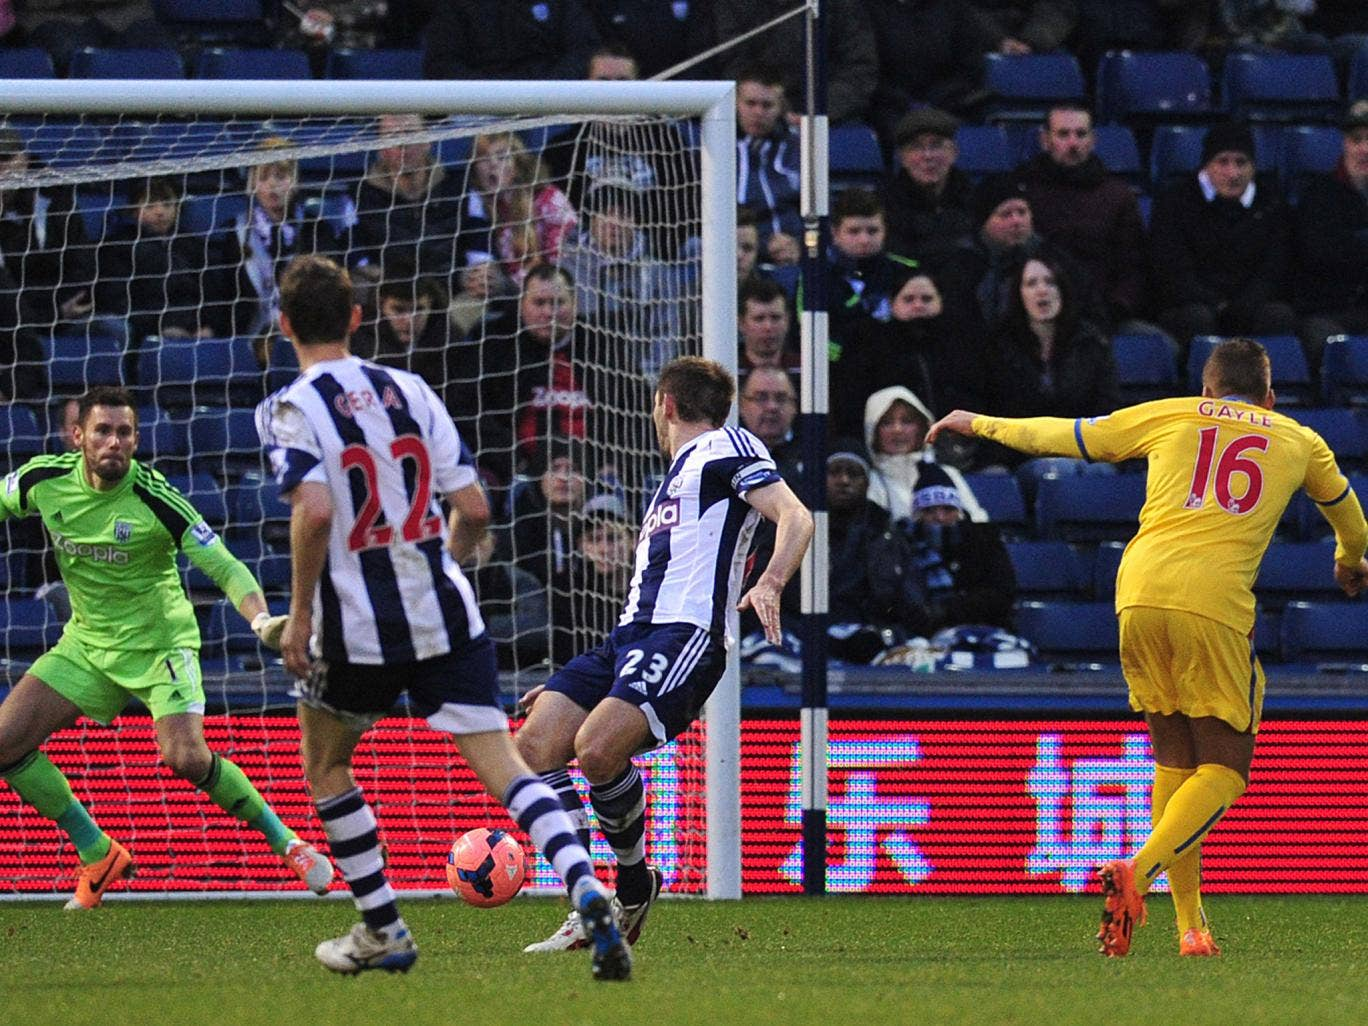 Dwight Gayle scores for Crystal Palace in their 2-0 win over West Brom